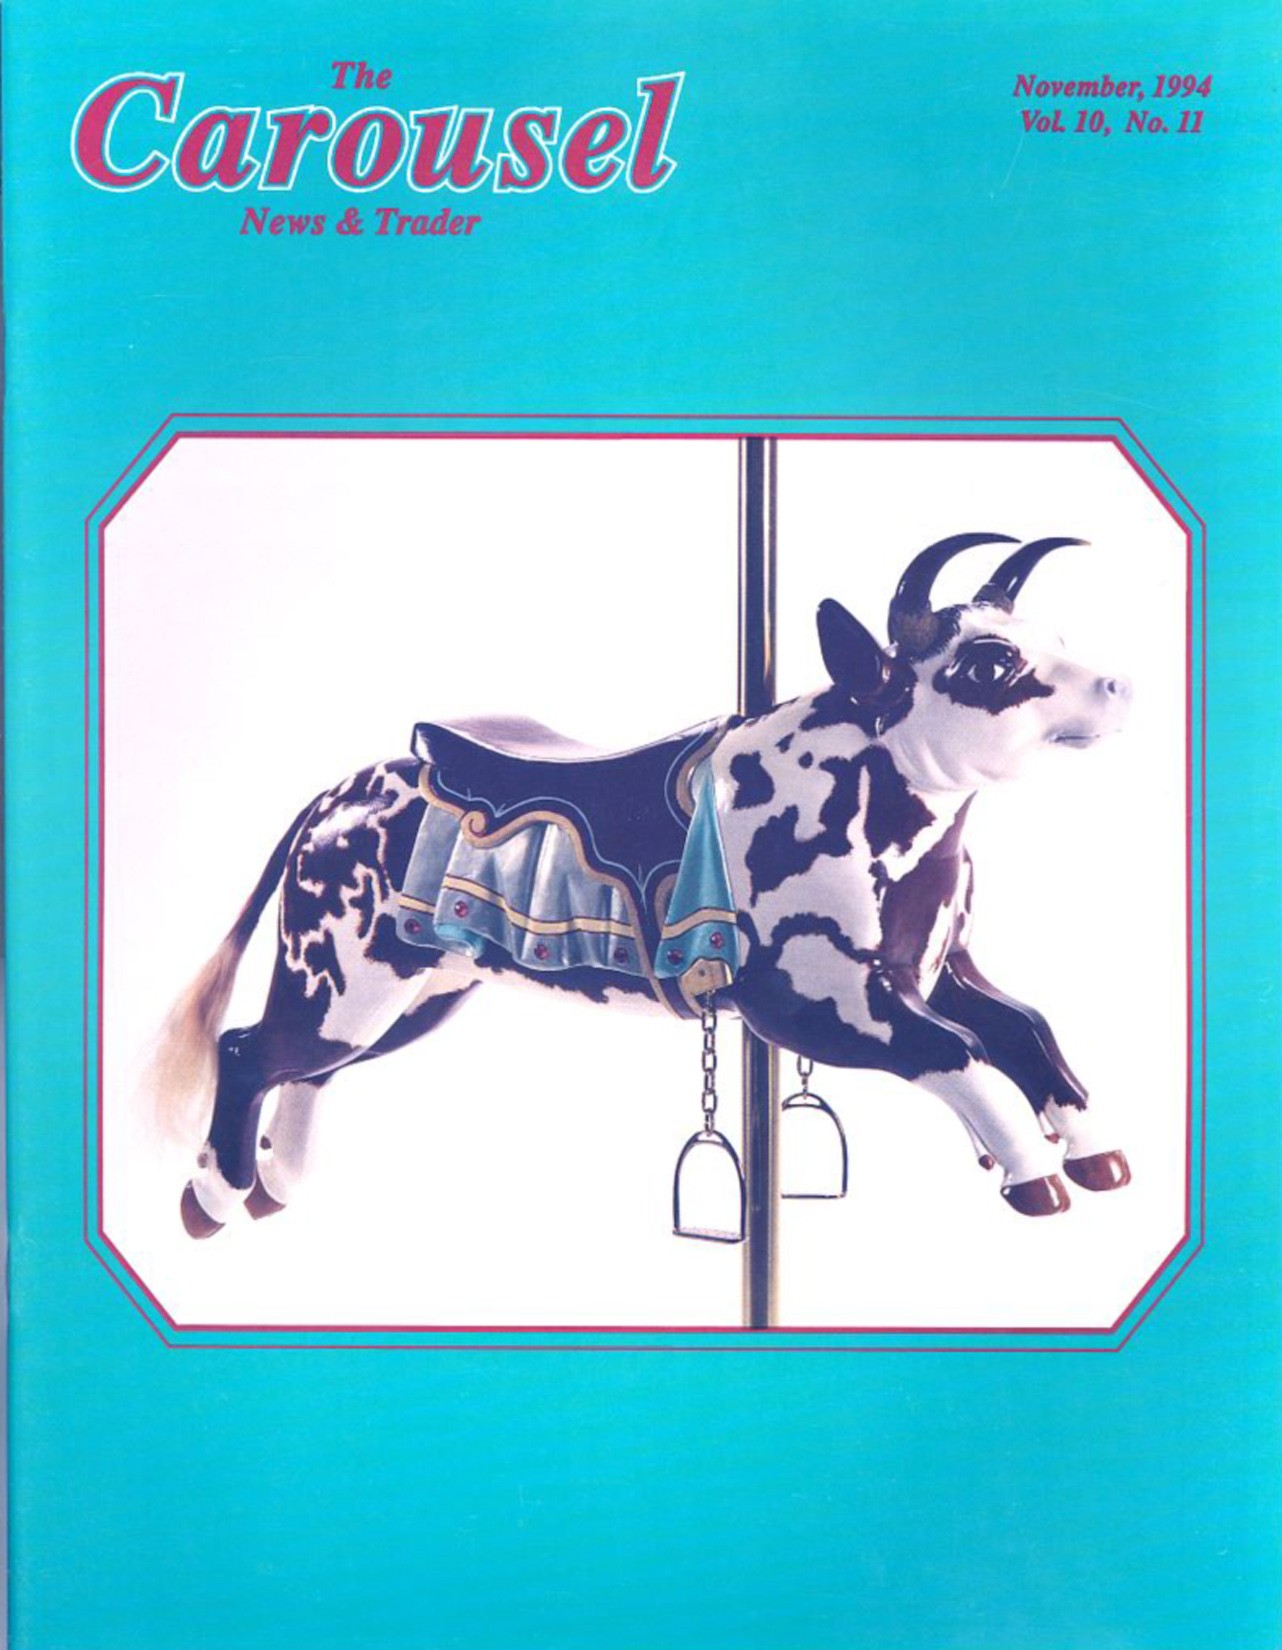 Issue No. 11, Vol. 10 – November 1994